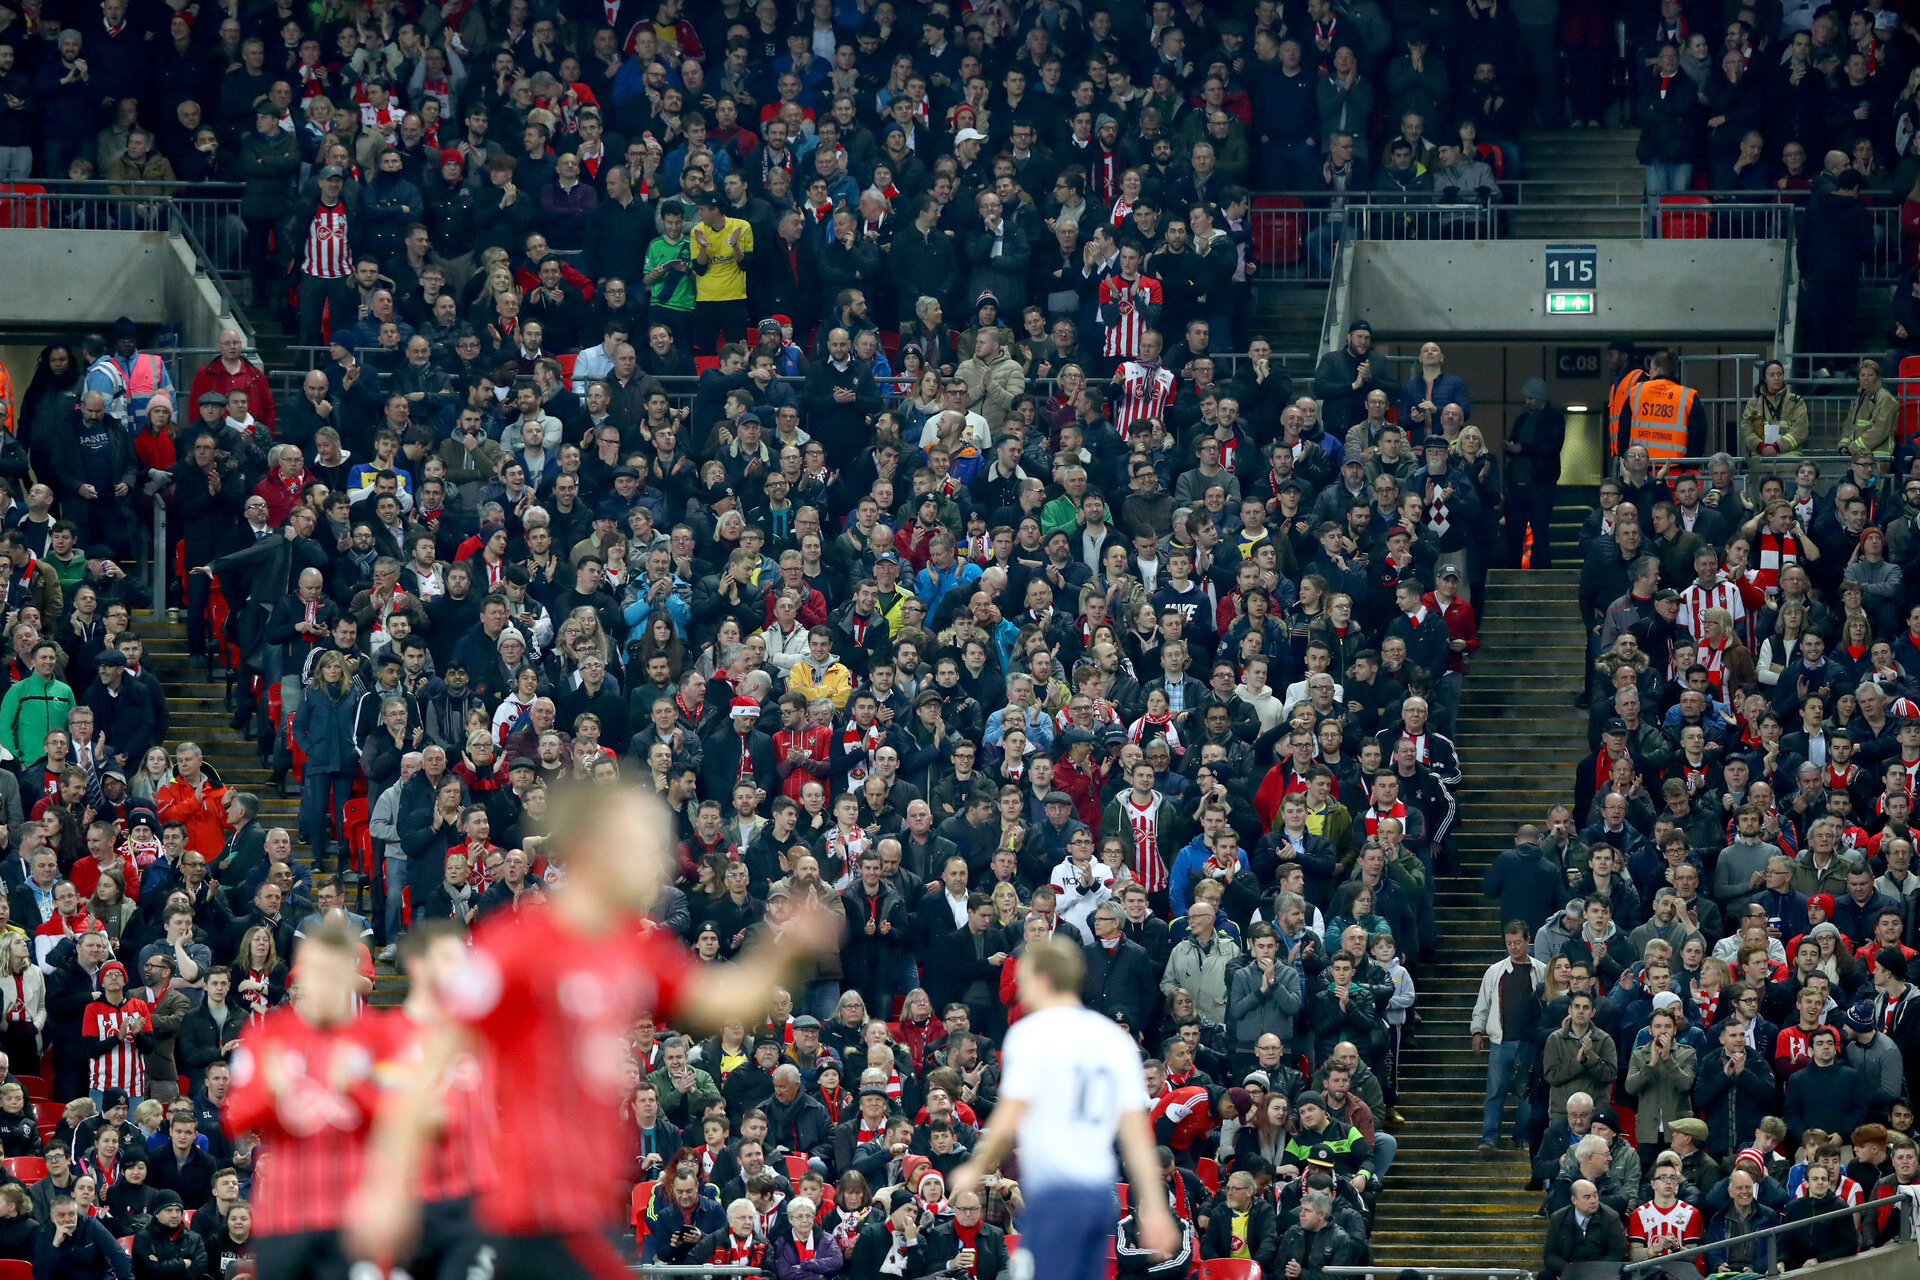 LONDON, ENGLAND - DECEMBER 05: fans of Southampton during the Premier League match between Tottenham Hotspur and Southampton FC at Tottenham Hotspur Stadium on December 5, 2018 in London, United Kingdom. (Photo by Matt Watson/Southampton FC via Getty Images)